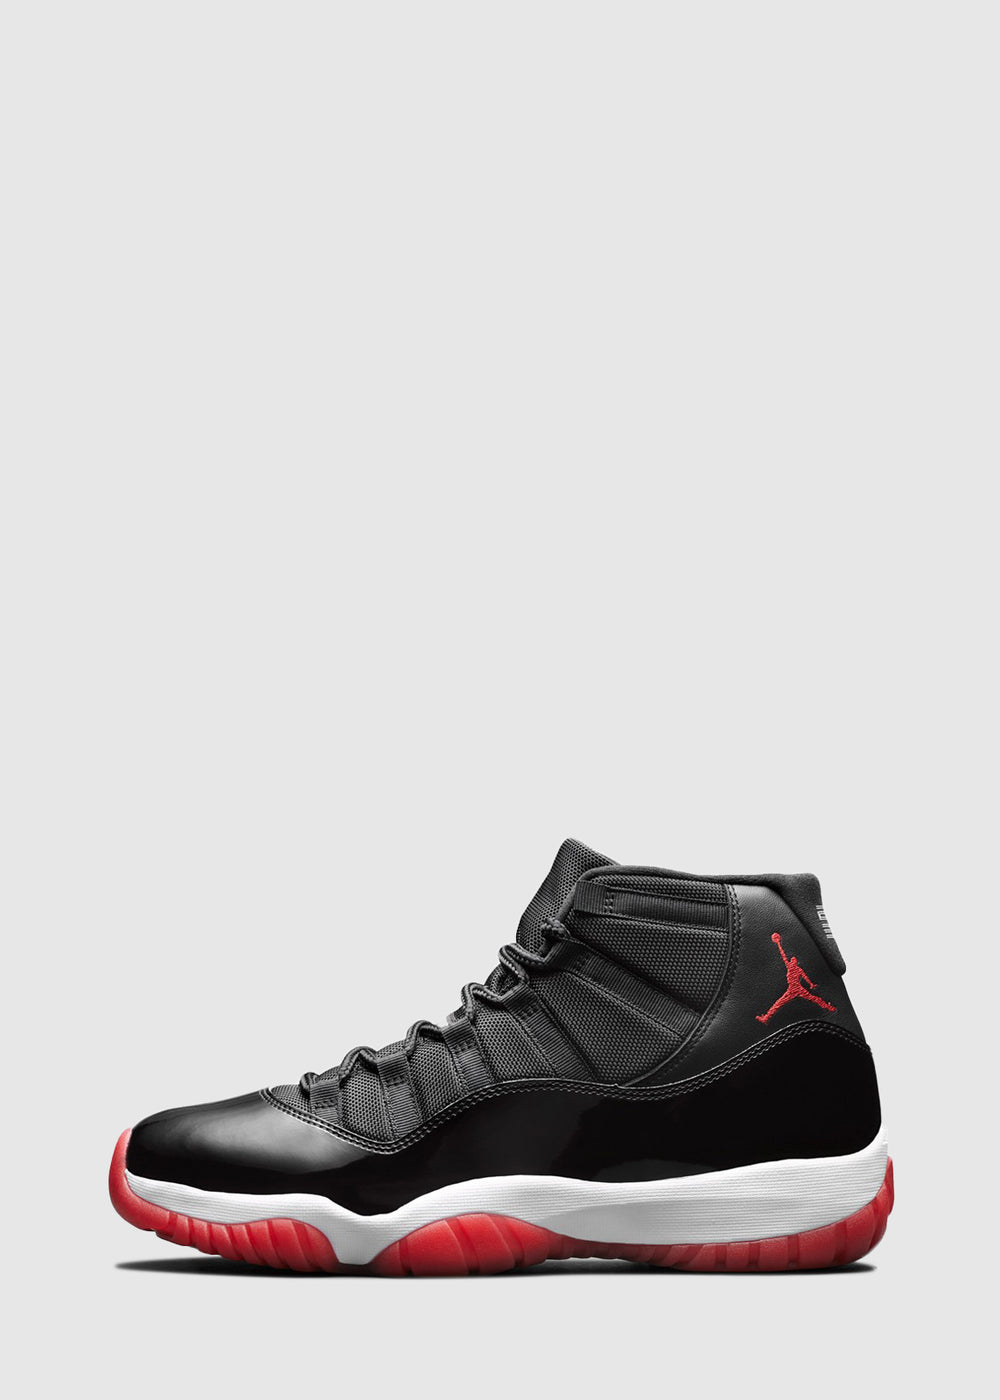 jordan-air-jordan-11-bred-black-1